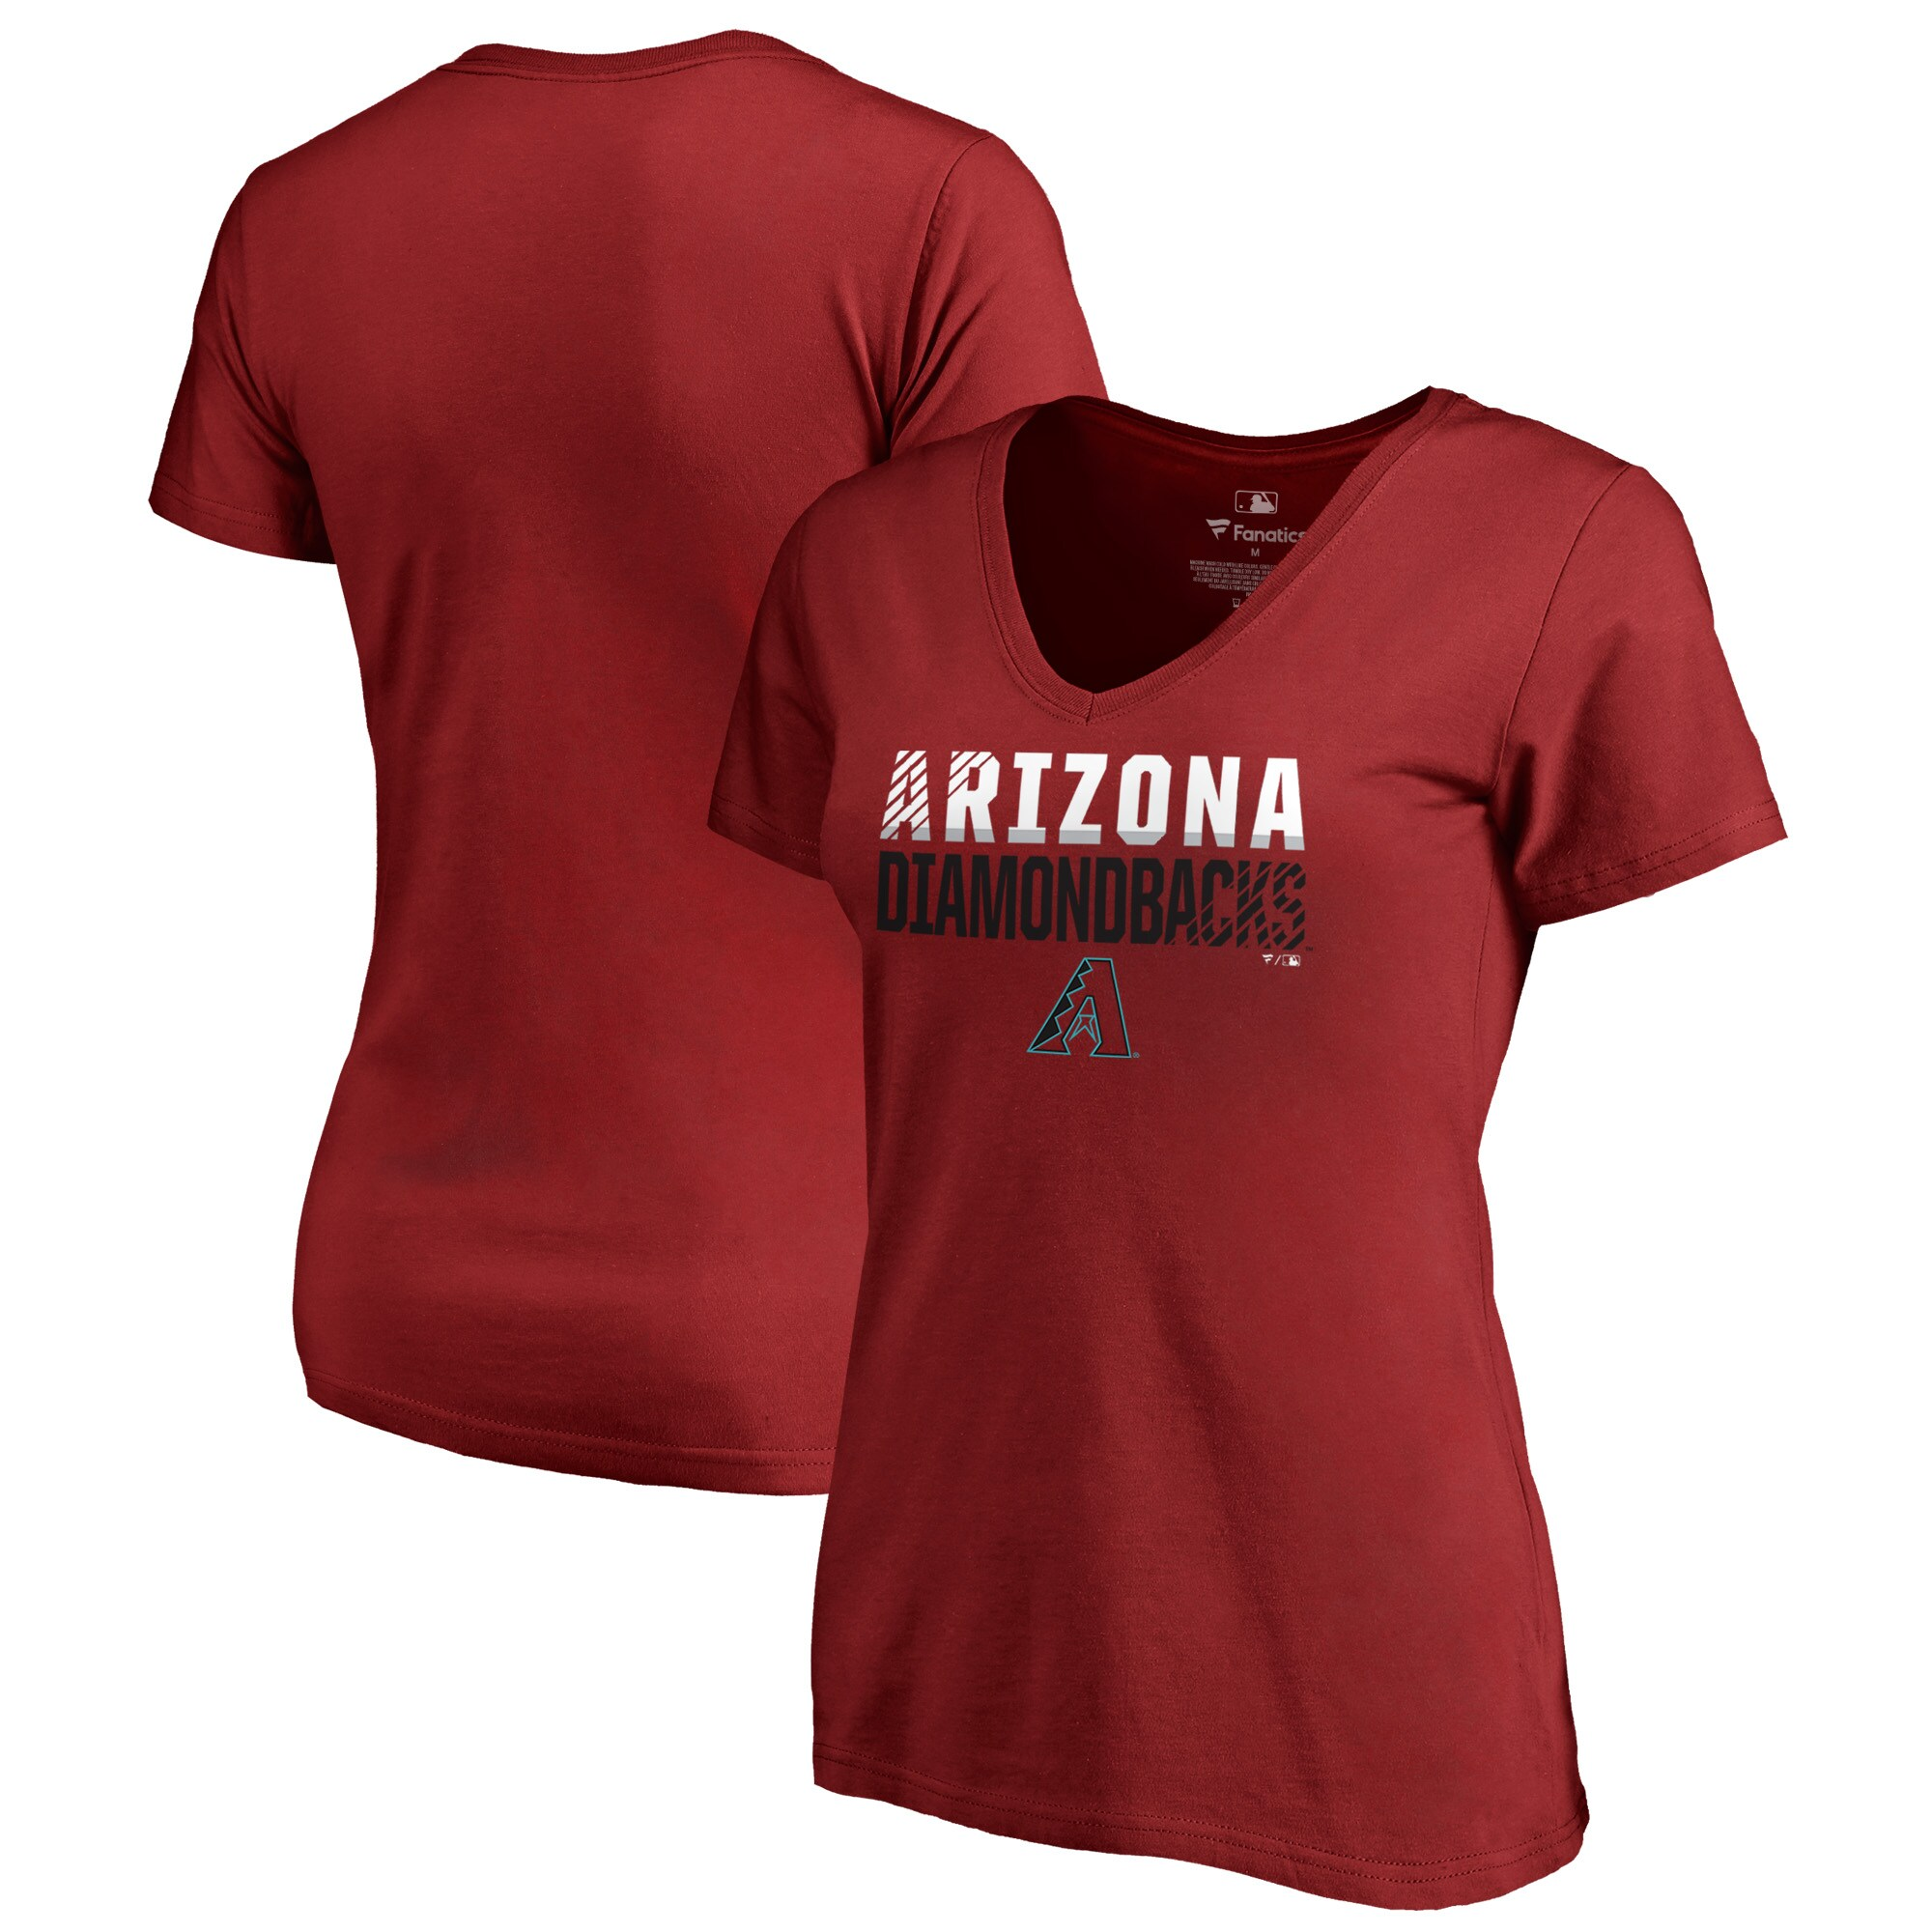 Arizona Diamondbacks Fanatics Branded Women's Fade Out V-Neck T-Shirt - Red